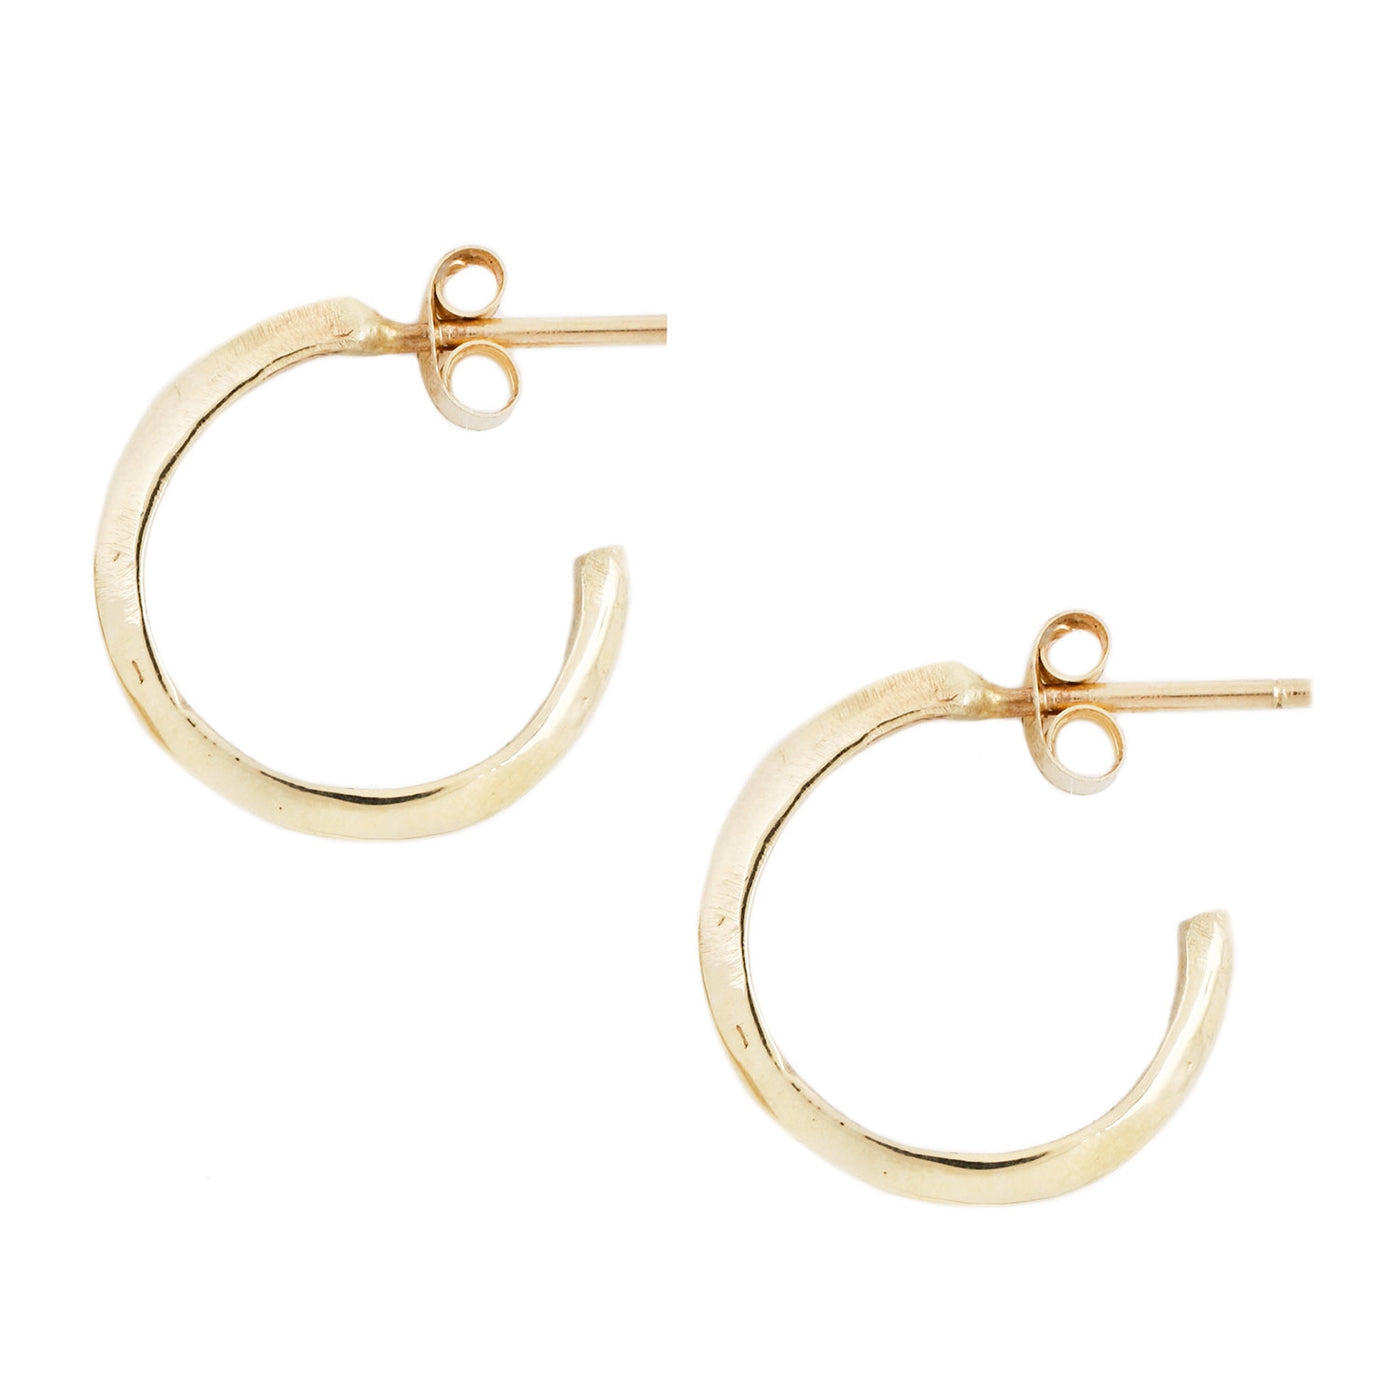 Adeline Gold Knife Edge Hoop Earrings